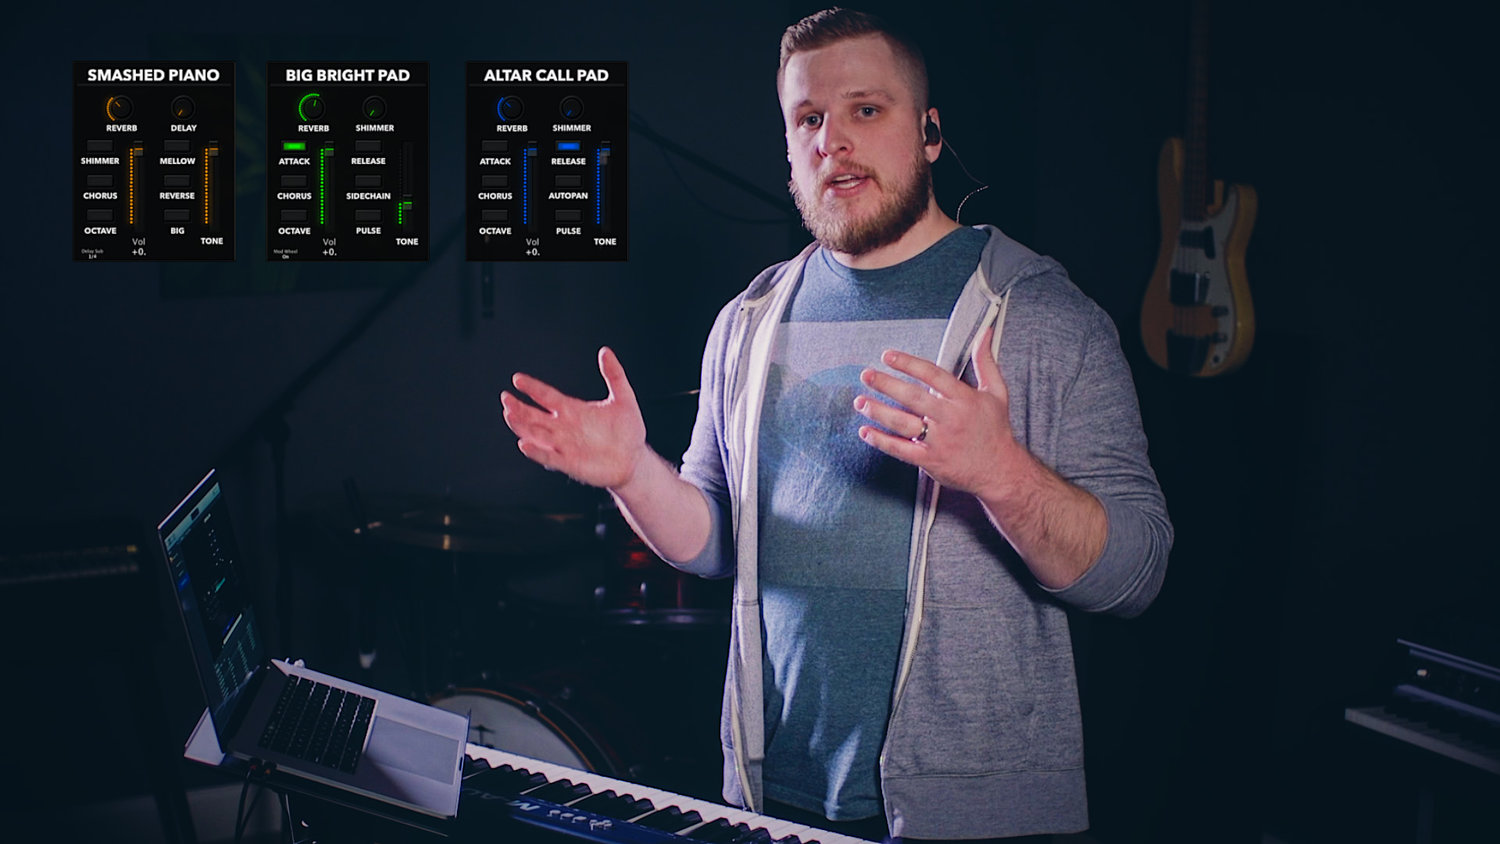 Sunday Keys Version 2: Create the Perfect Piano & Pad in